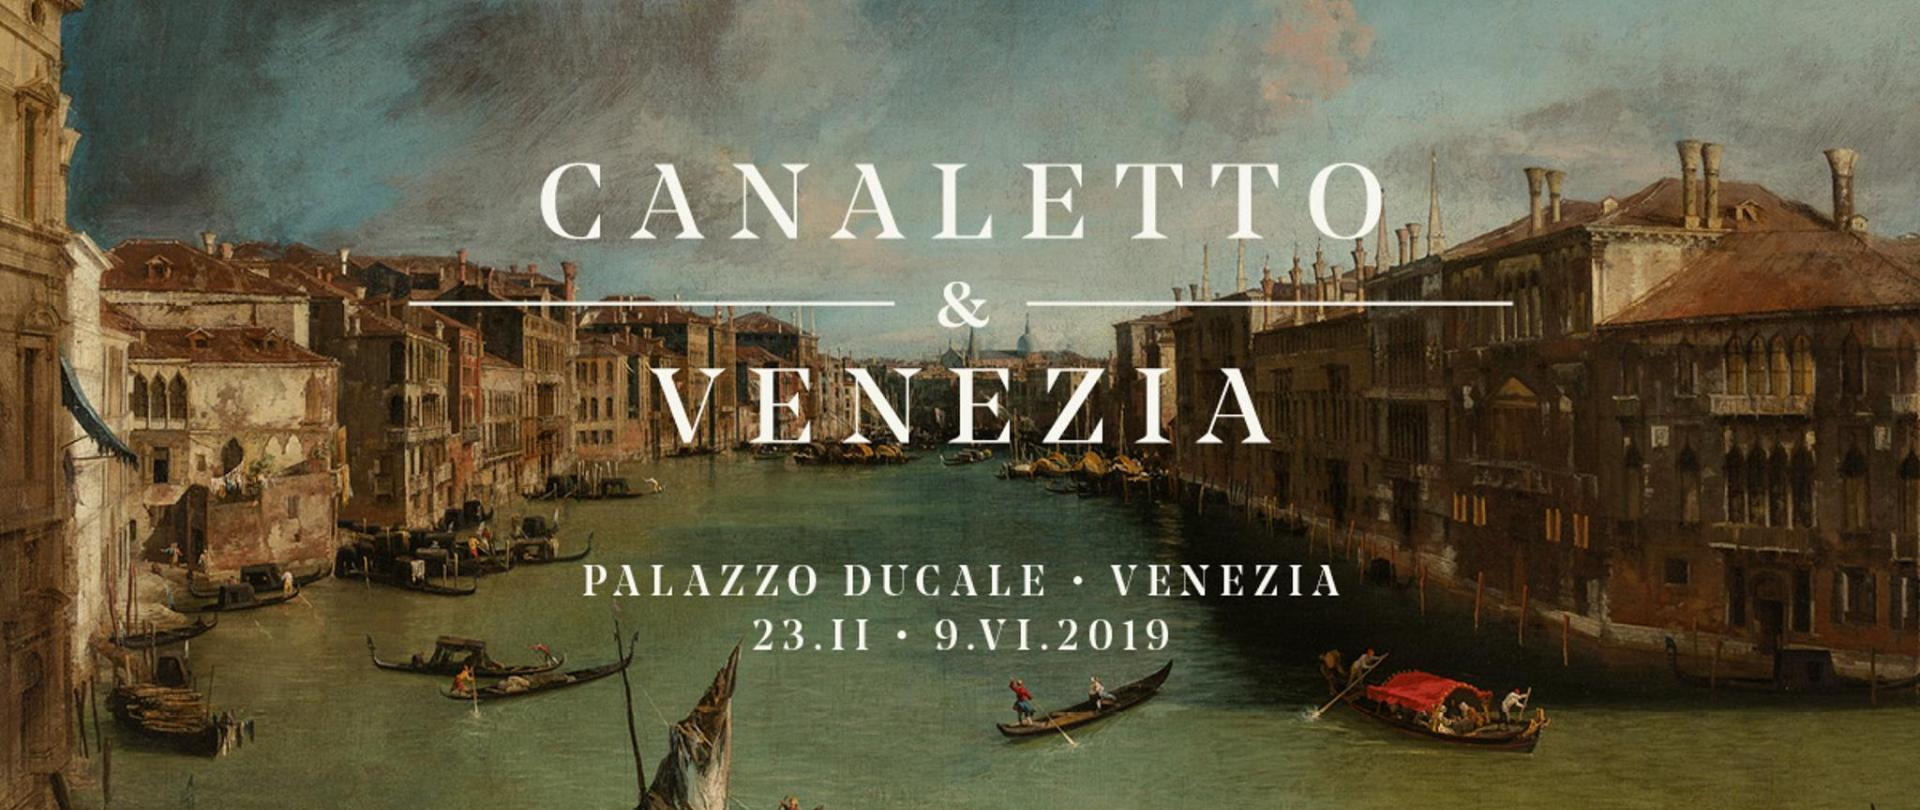 mostra Canaletto palazzo ducale 2019.jpg